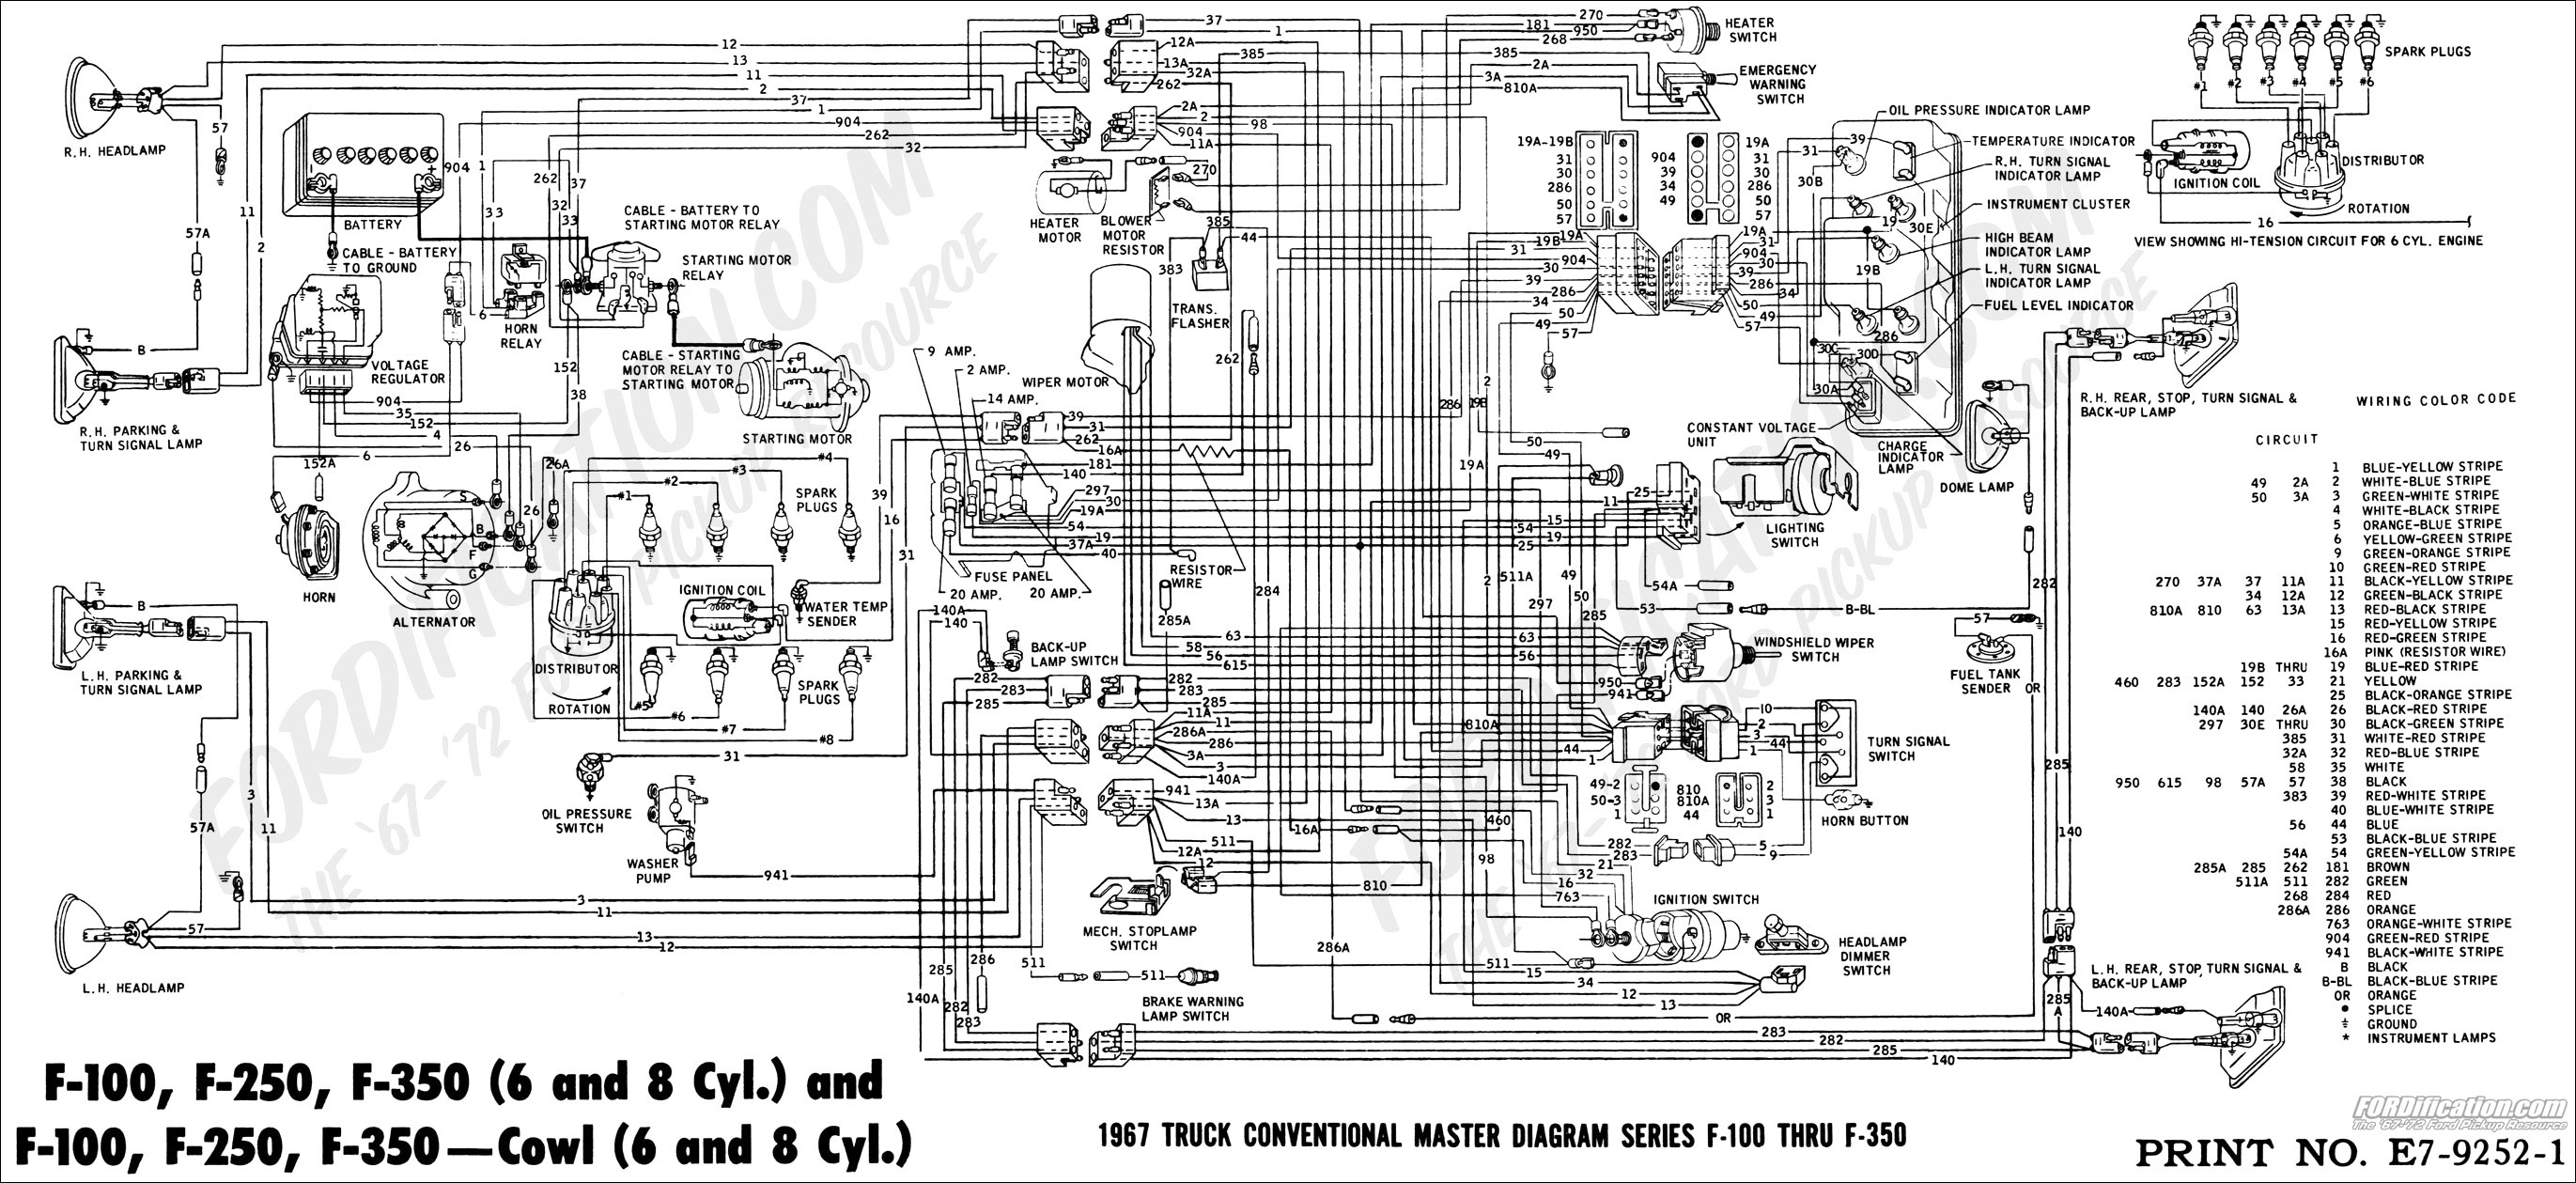 84 F150 Wiring Diagram Wiring Harness Database